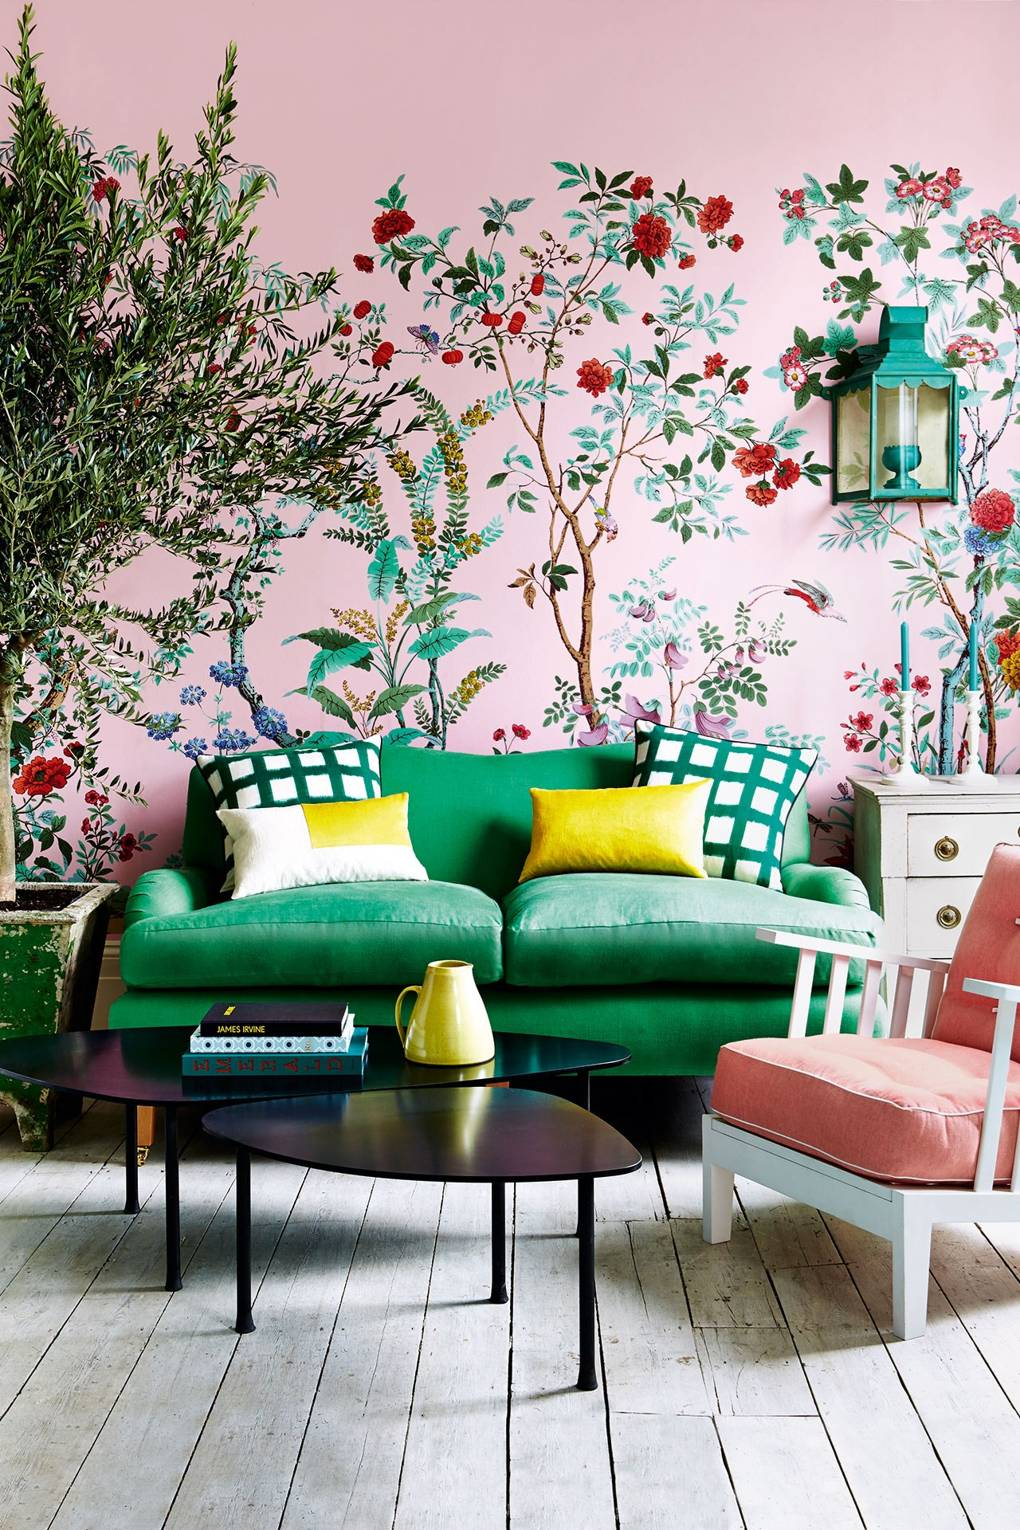 Pink and Green Living Room Inspiration   20 Photos That Will Prove Decorating with Pink and Green is the Next Big Thing